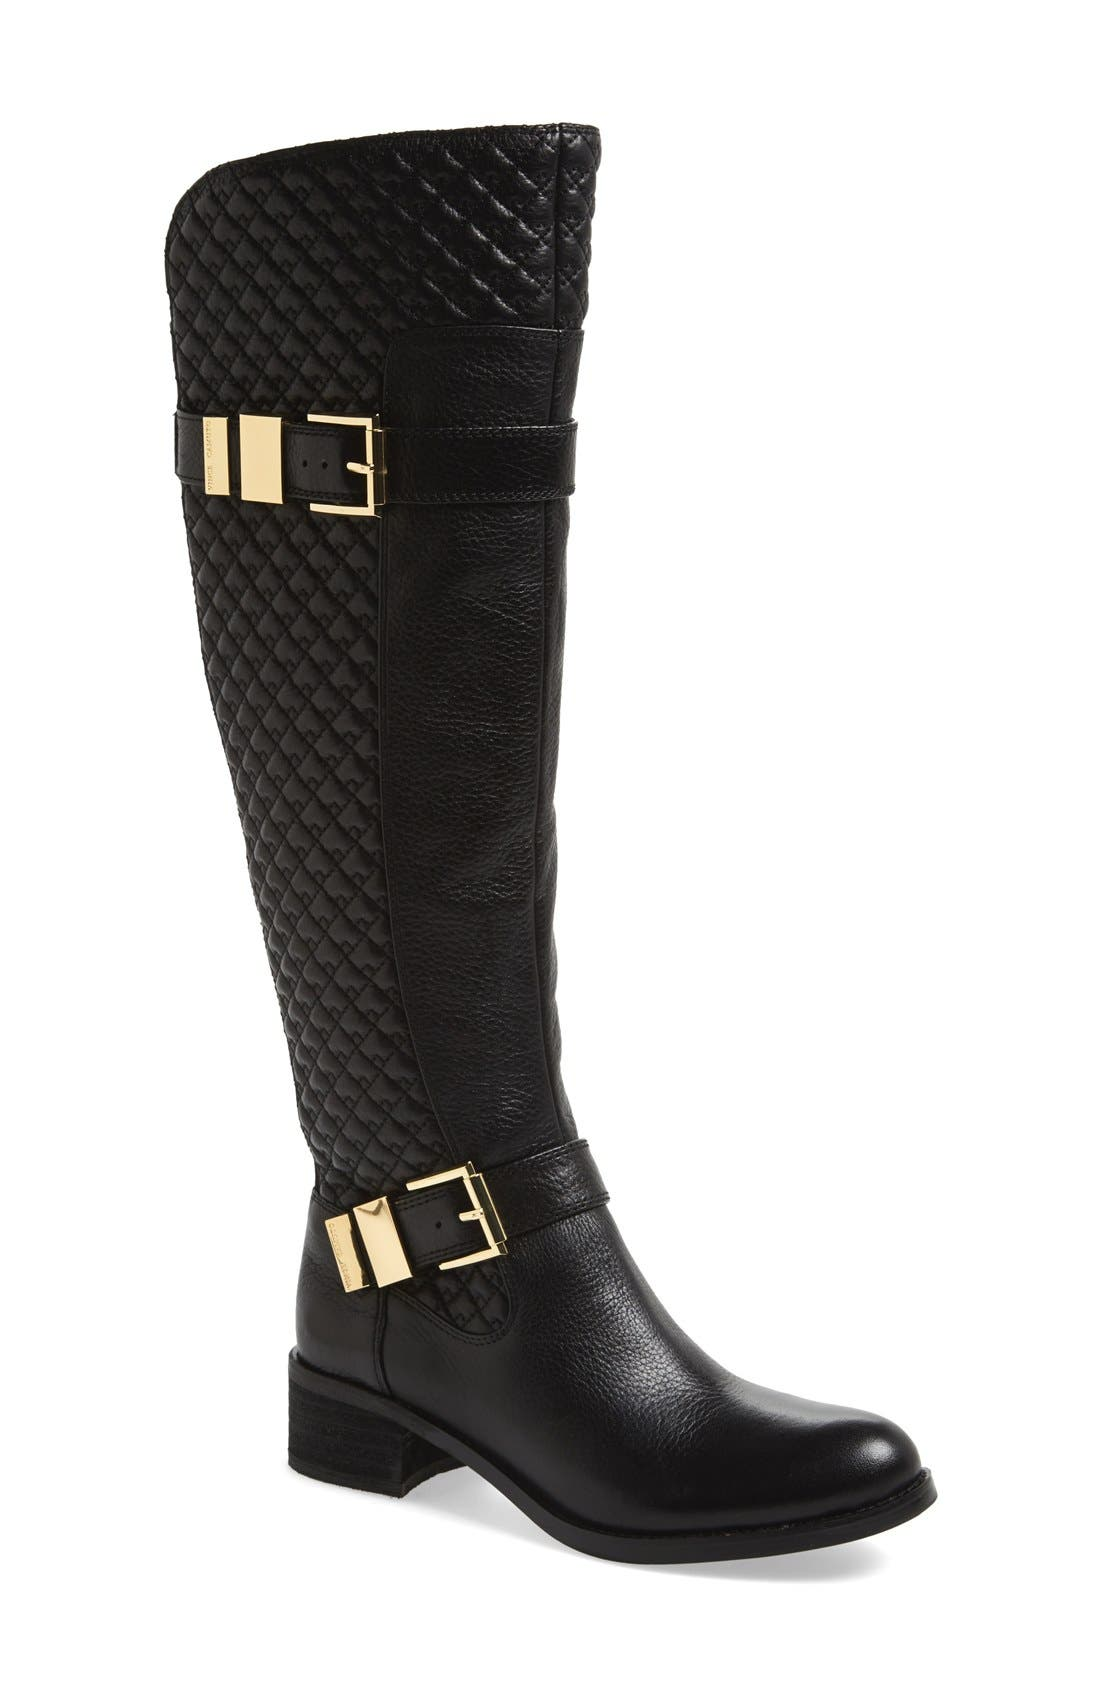 Main Image - Vince Camuto 'Faris' Tall Boot (Women)